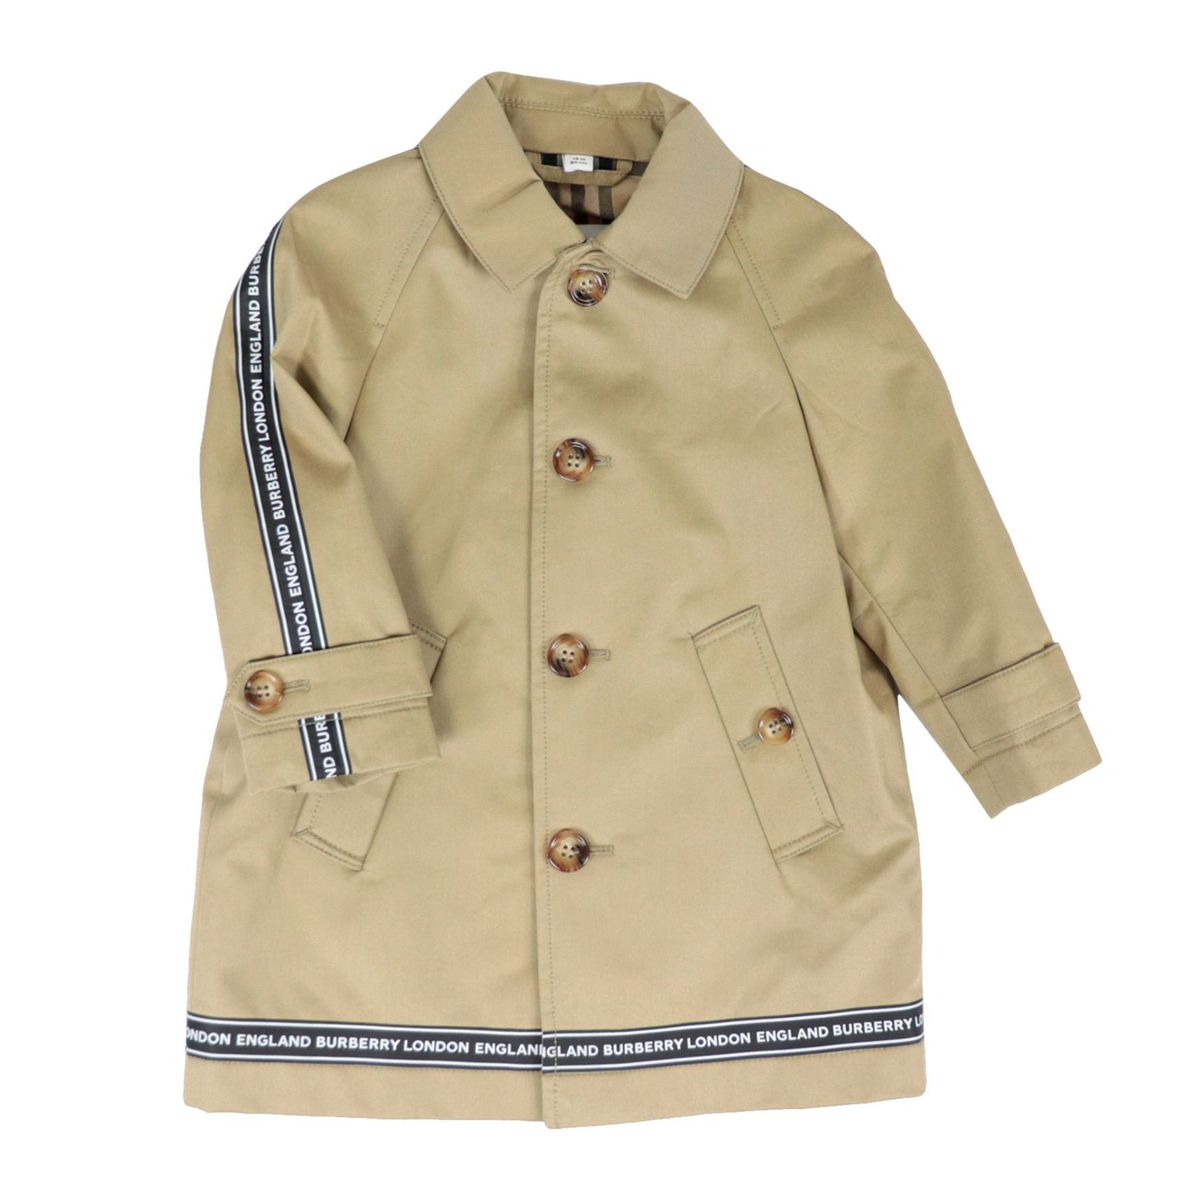 Bradley coat in cotton with internal check fantasy lining and logoed side bands Honey Burberry